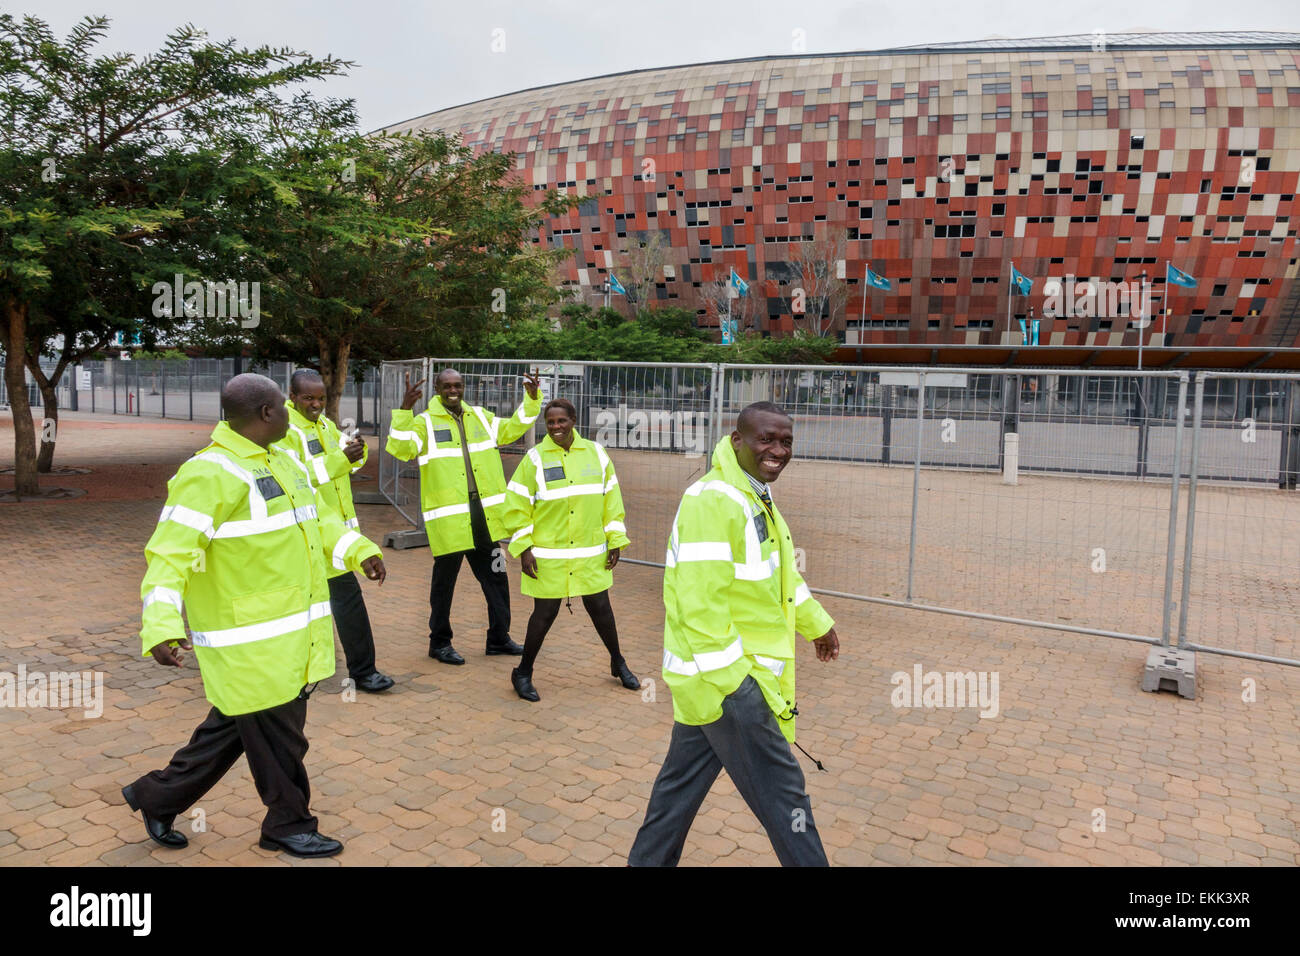 Game for coworkers - Johannesburg South Africa African Nasrec Fnb Soccer City Stadium The Calabash Black Man Woman Security Guards Coworkers Uniform Before Game Football